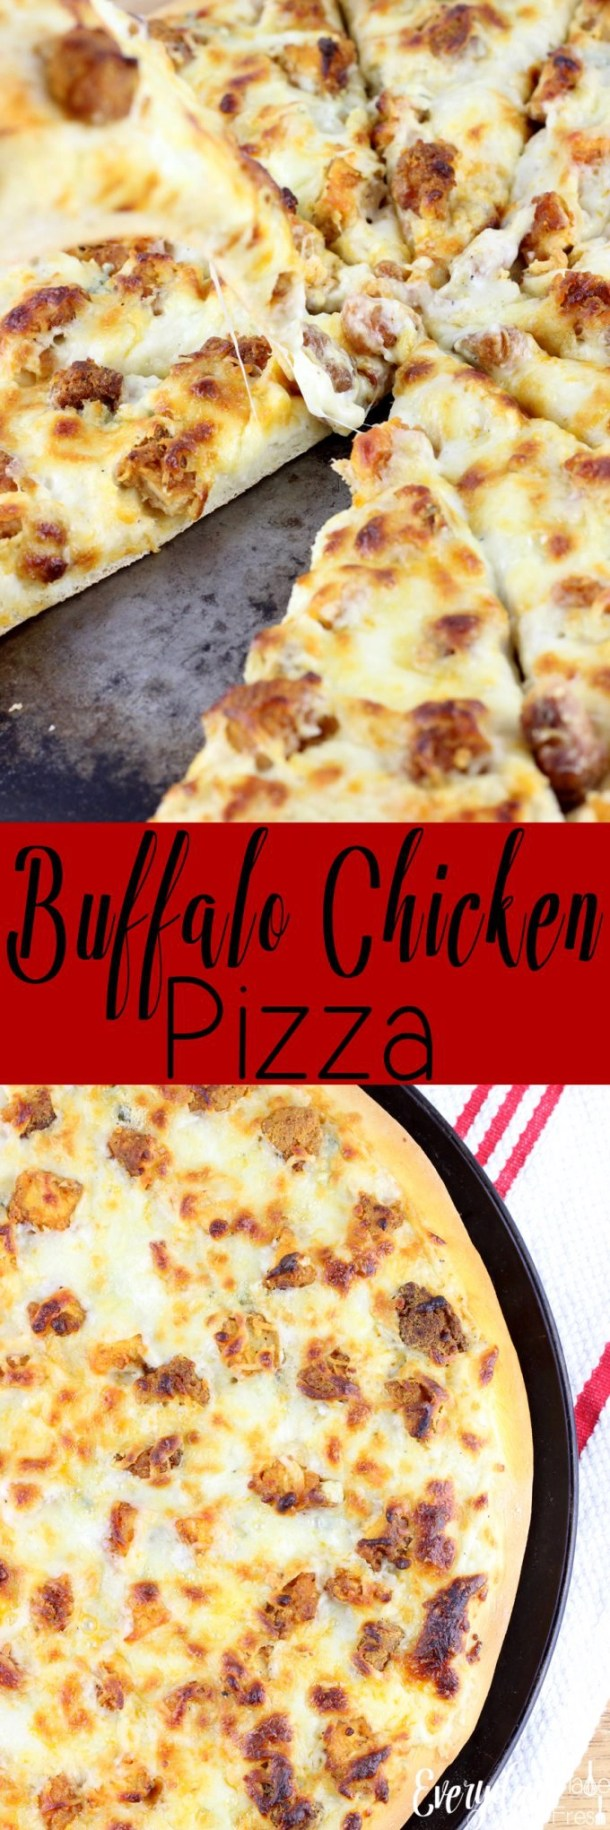 This Buffalo Chicken Pizza is simple and delicious! Enjoy one of your favorite pizzas at home, with this simple, no-rise crust. | EverydayMadeFresh.com